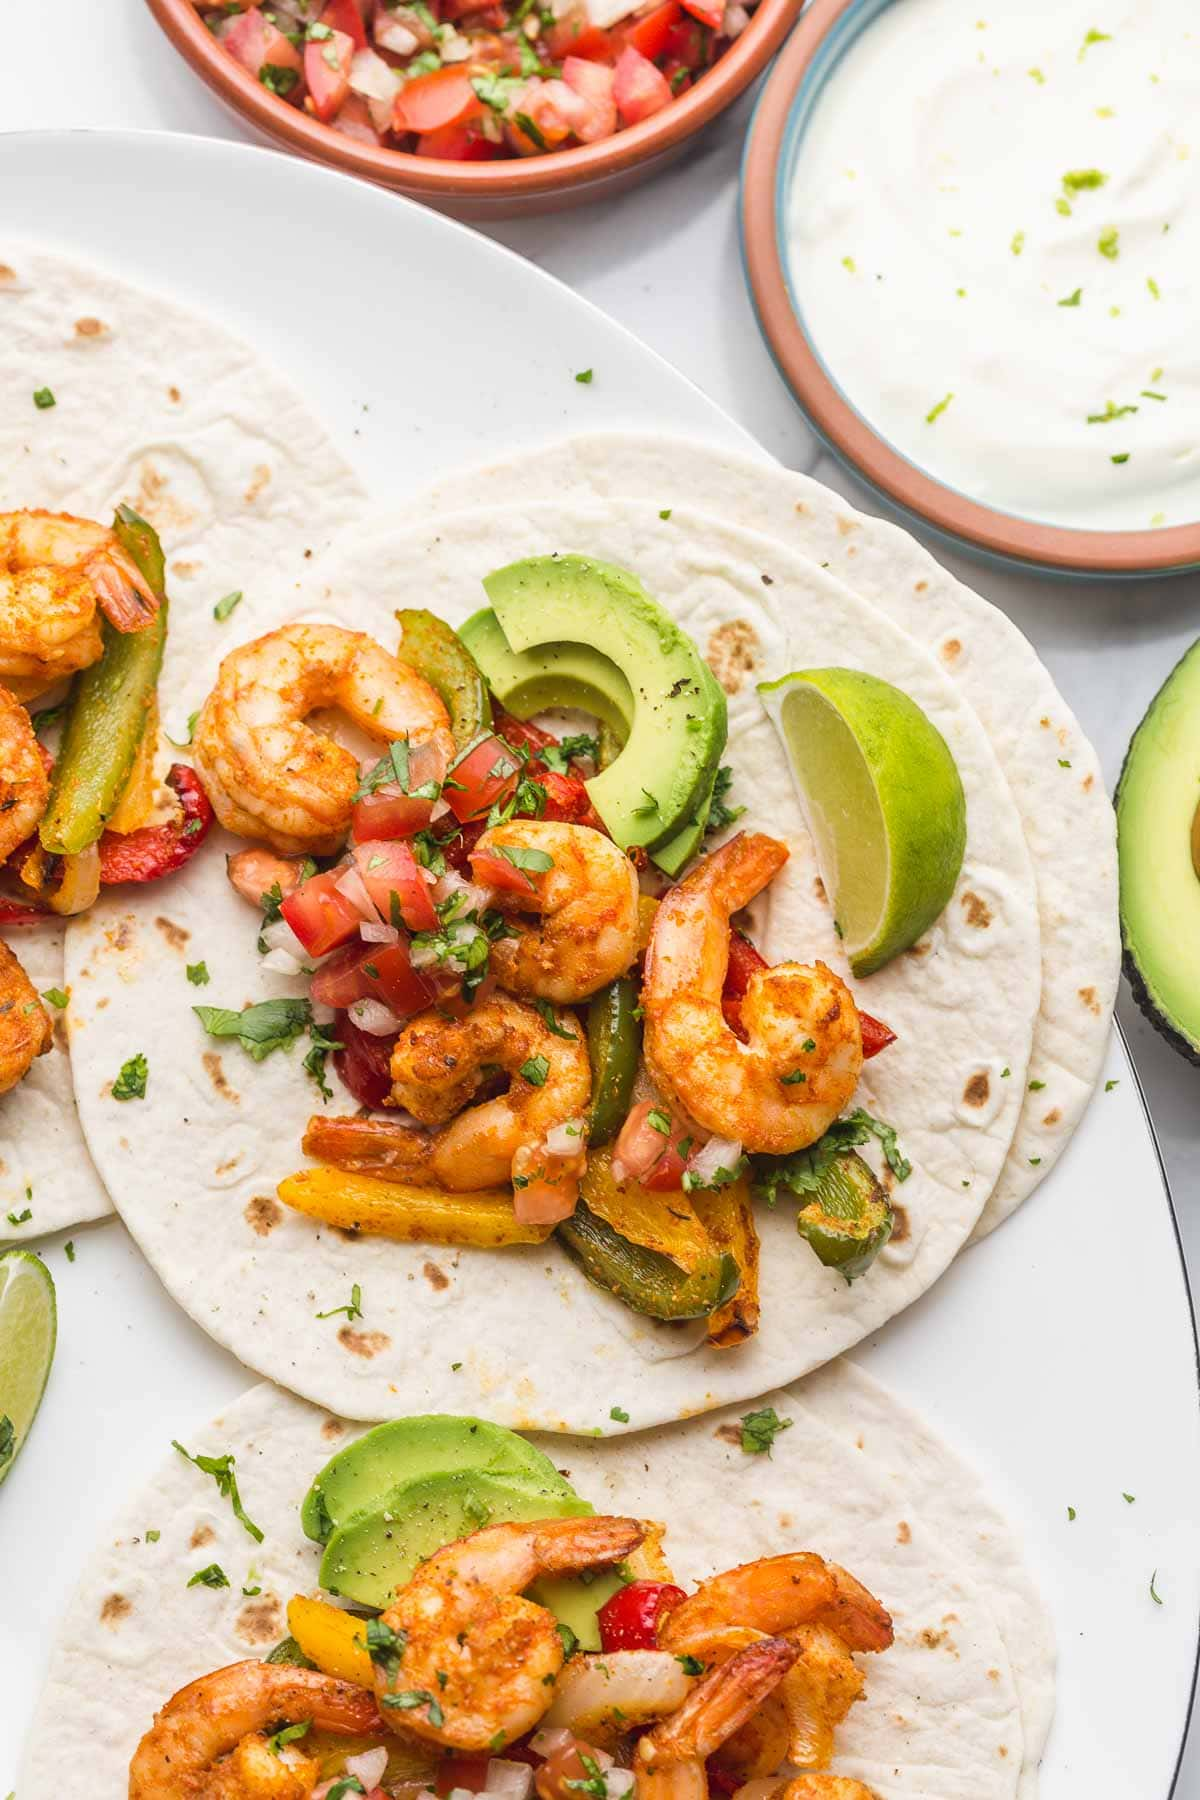 Overhead shot of shrimp fajitas on tortillas with fresh wedges of lime and sliced avocado